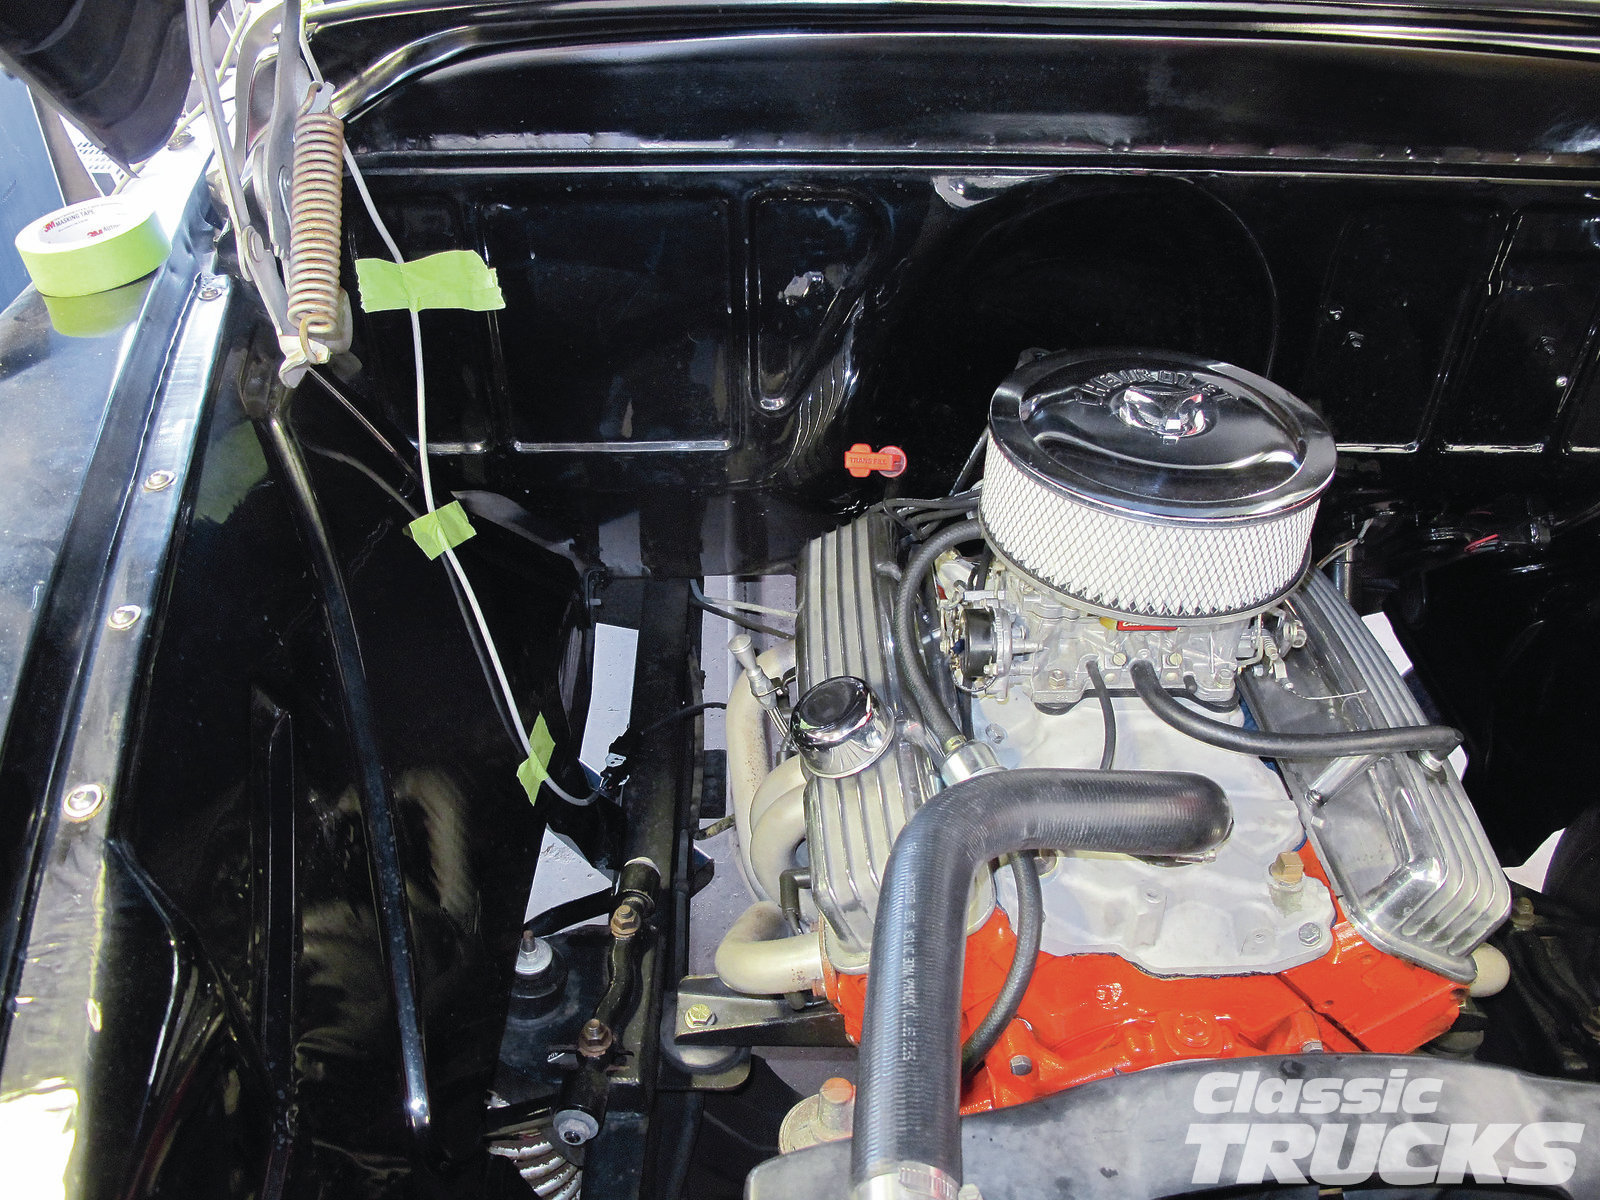 Since we were using this to tune several vehicles we wanted the wiring and O2 sensor to be removable. Using green tape I routed the wiring through the hood and into the cab. To power the FAST O2 sensor reader, simply plug it into a cigarette lighter socket and push the power-on button.